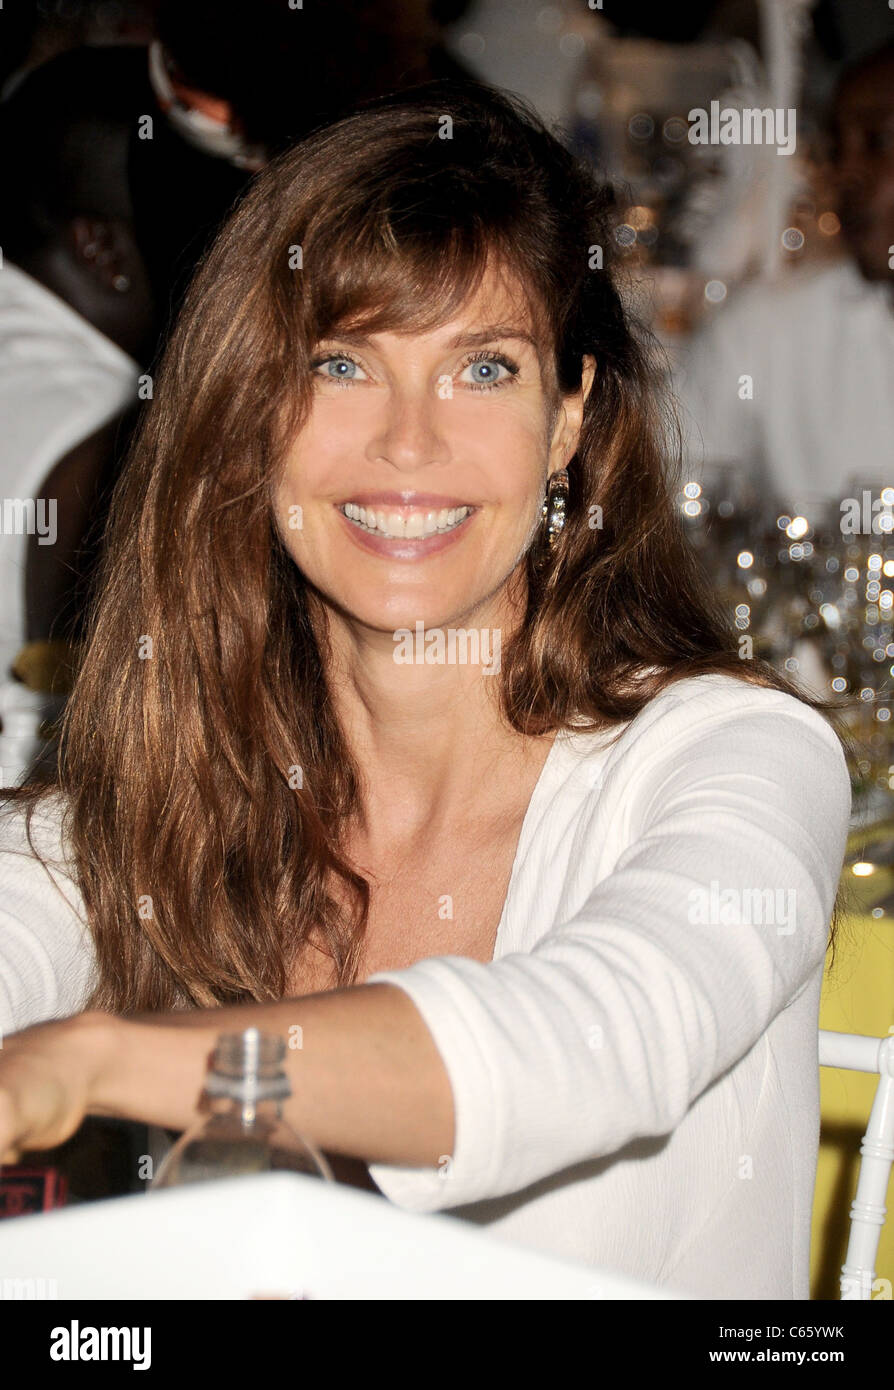 model carol alt stock photos model carol alt stock images alamy